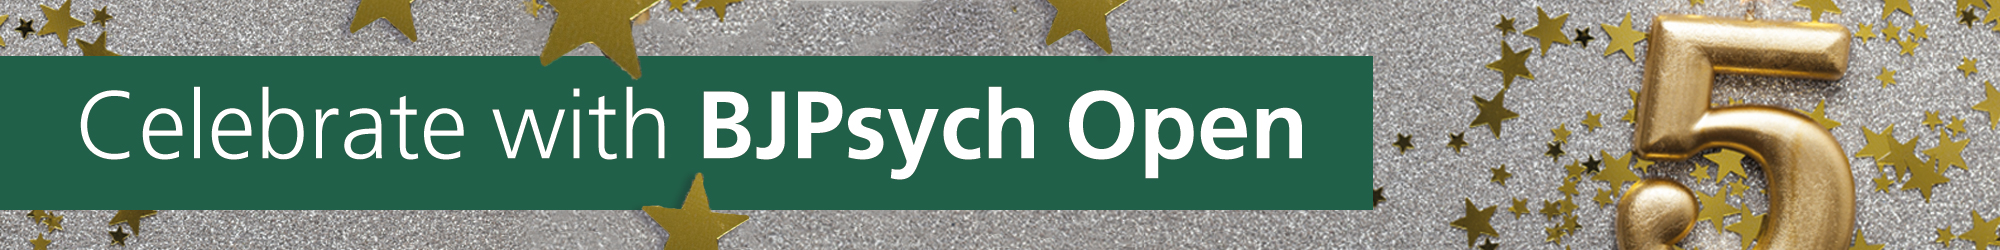 Celebrate with BJPsych Open Core Banner